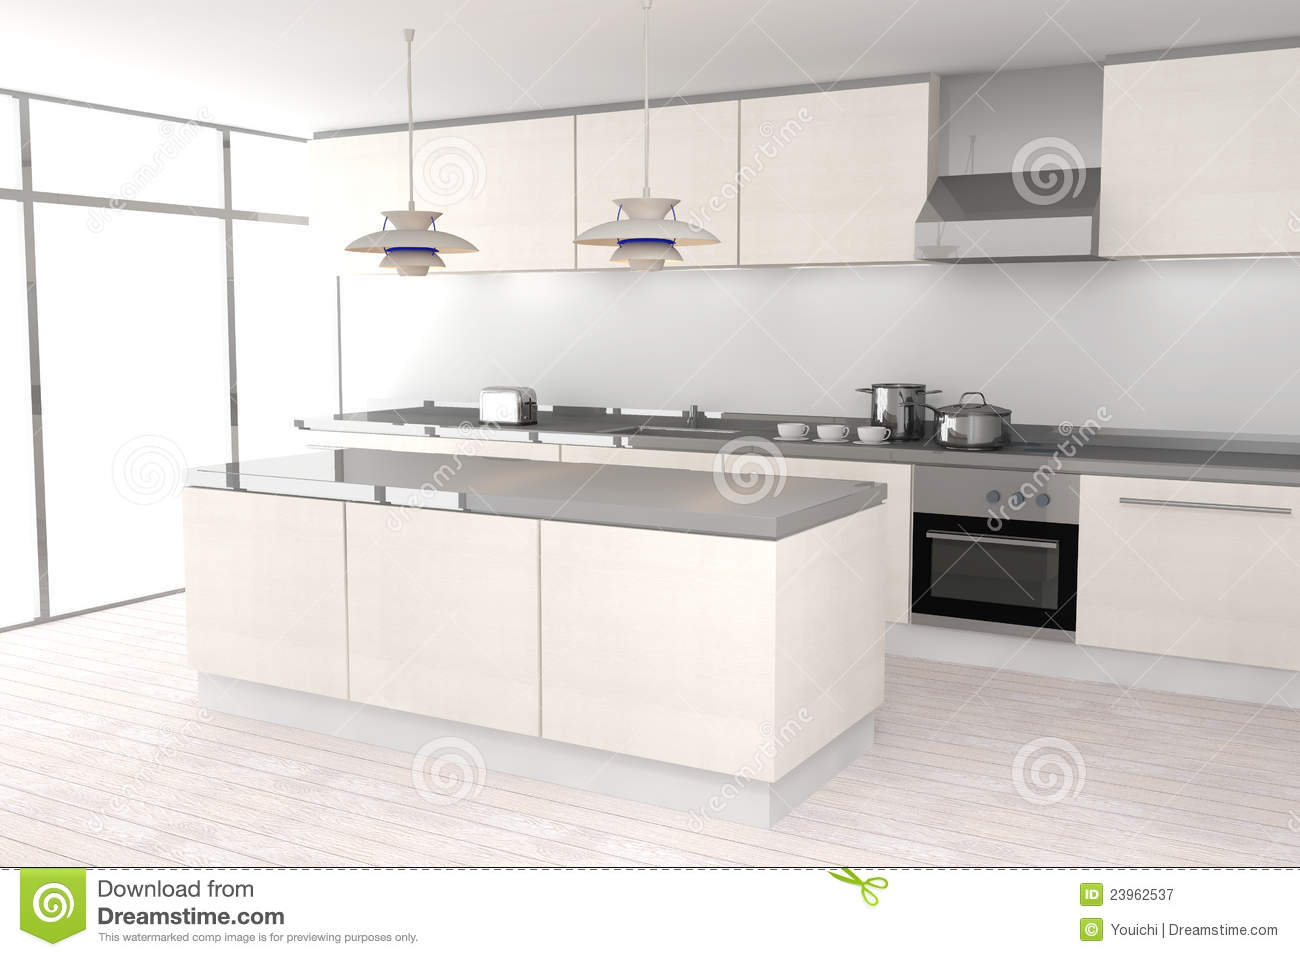 White Modern Kitchen Royalty Free Stock Photography - Image: 23962537